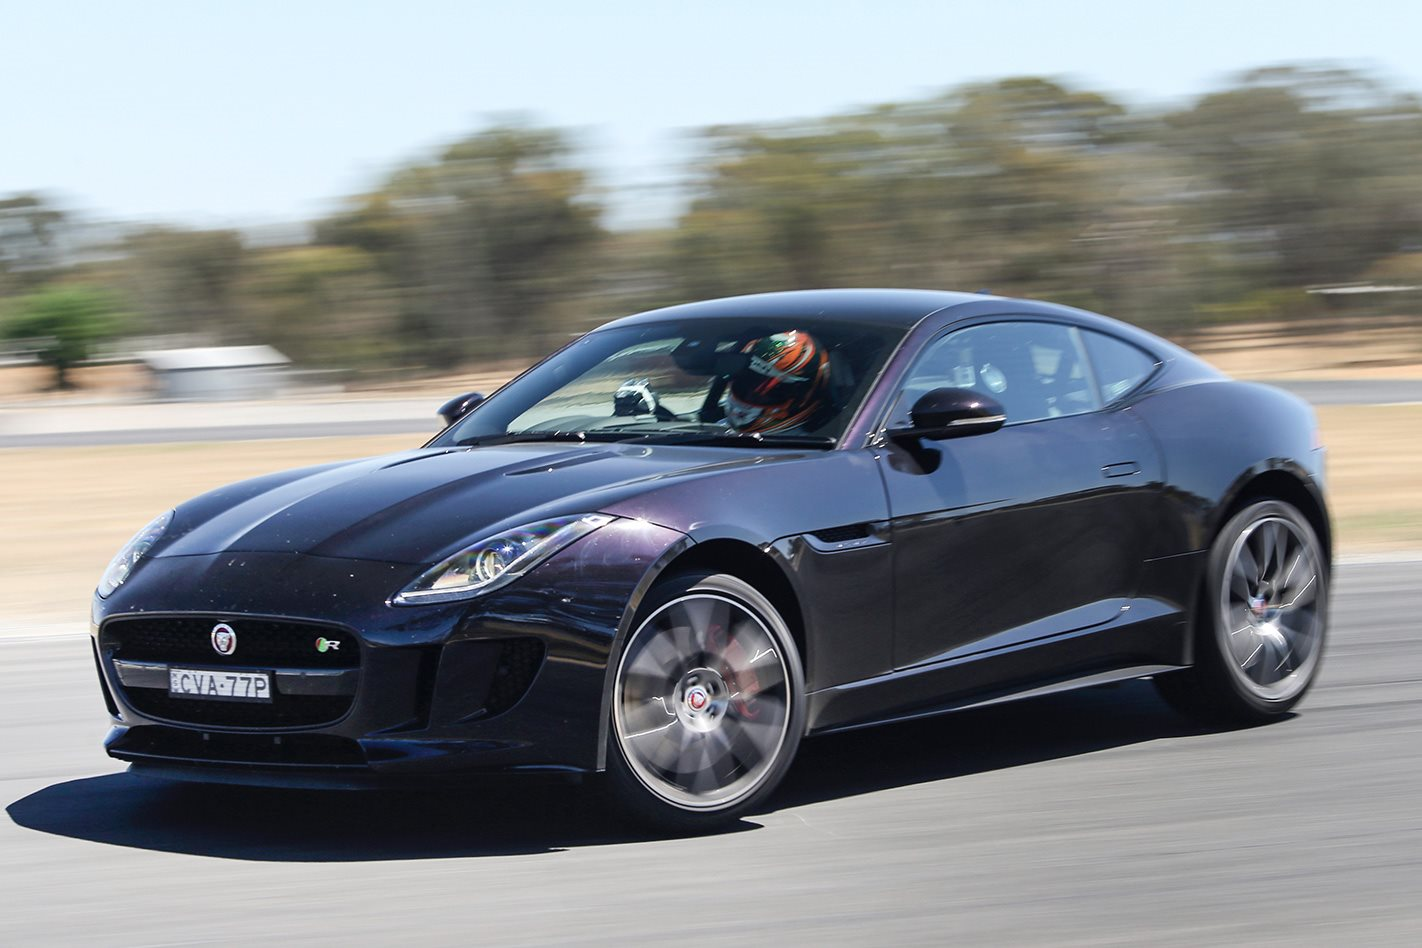 Jaguar-F-Type-V8-RWD-side.jpg